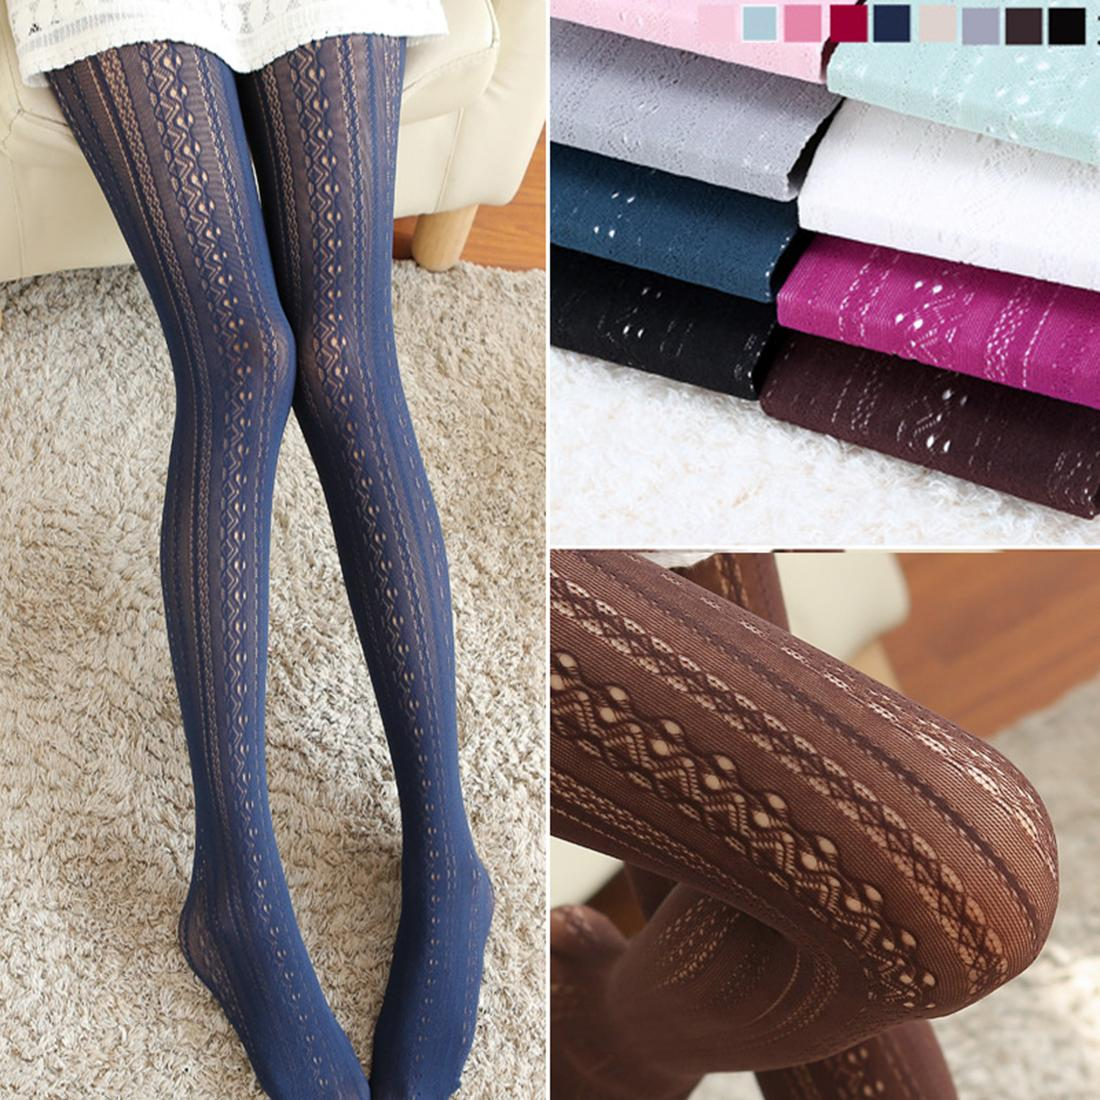 Bars in pantyhose images 513